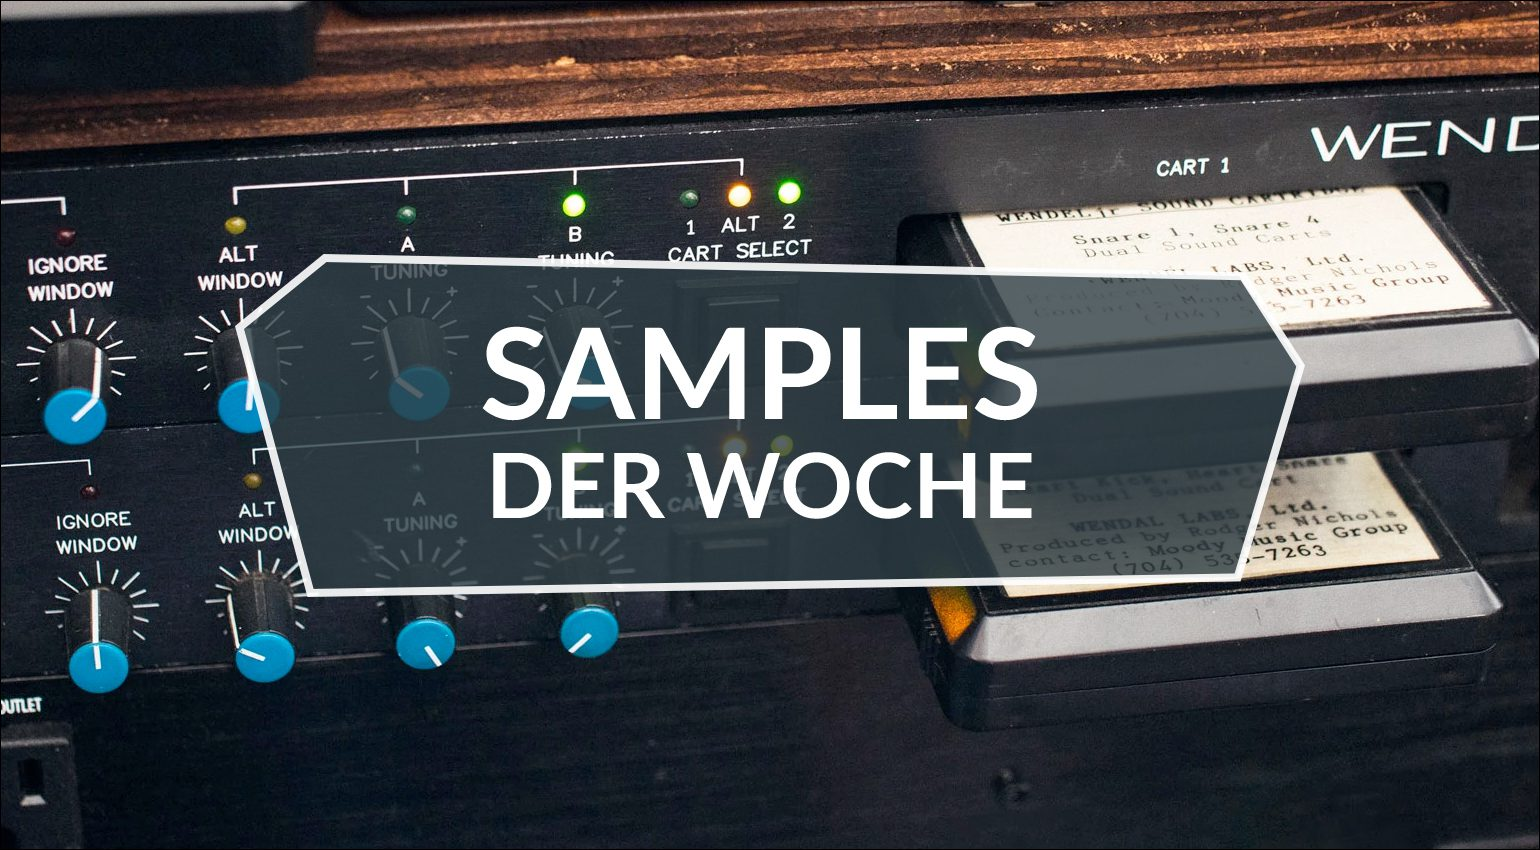 Samples der Woche: Damage 2, Wendel From Mars, Harmonic Songbird